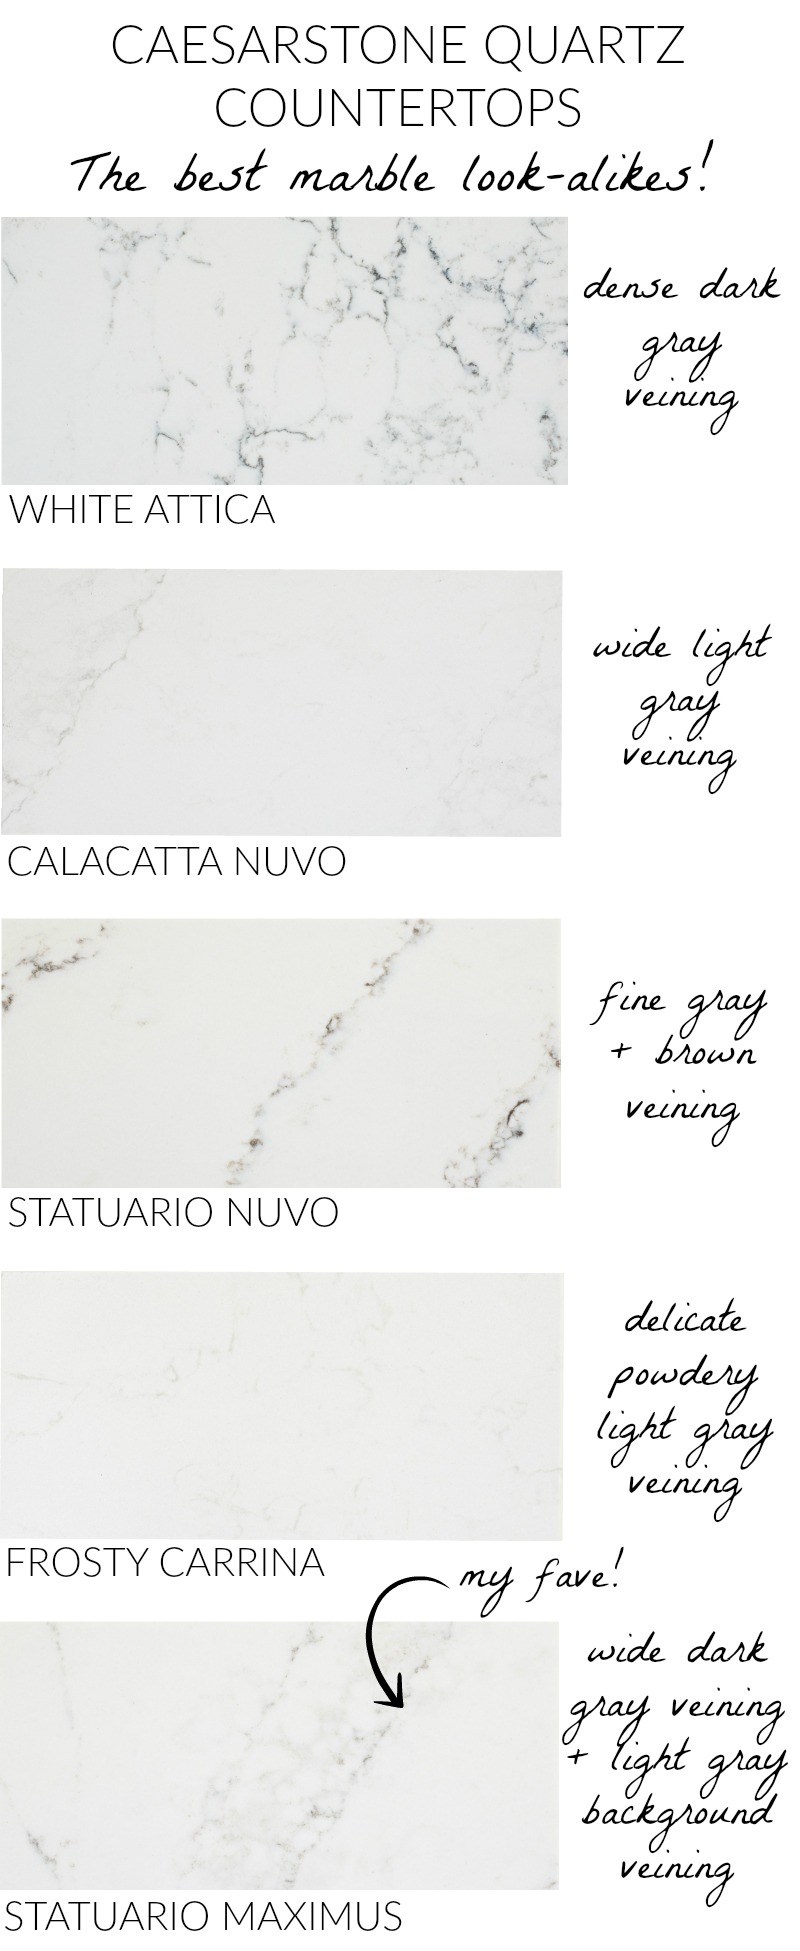 Love these Caesarstone countertops that have the durability of quartz but look like marble!